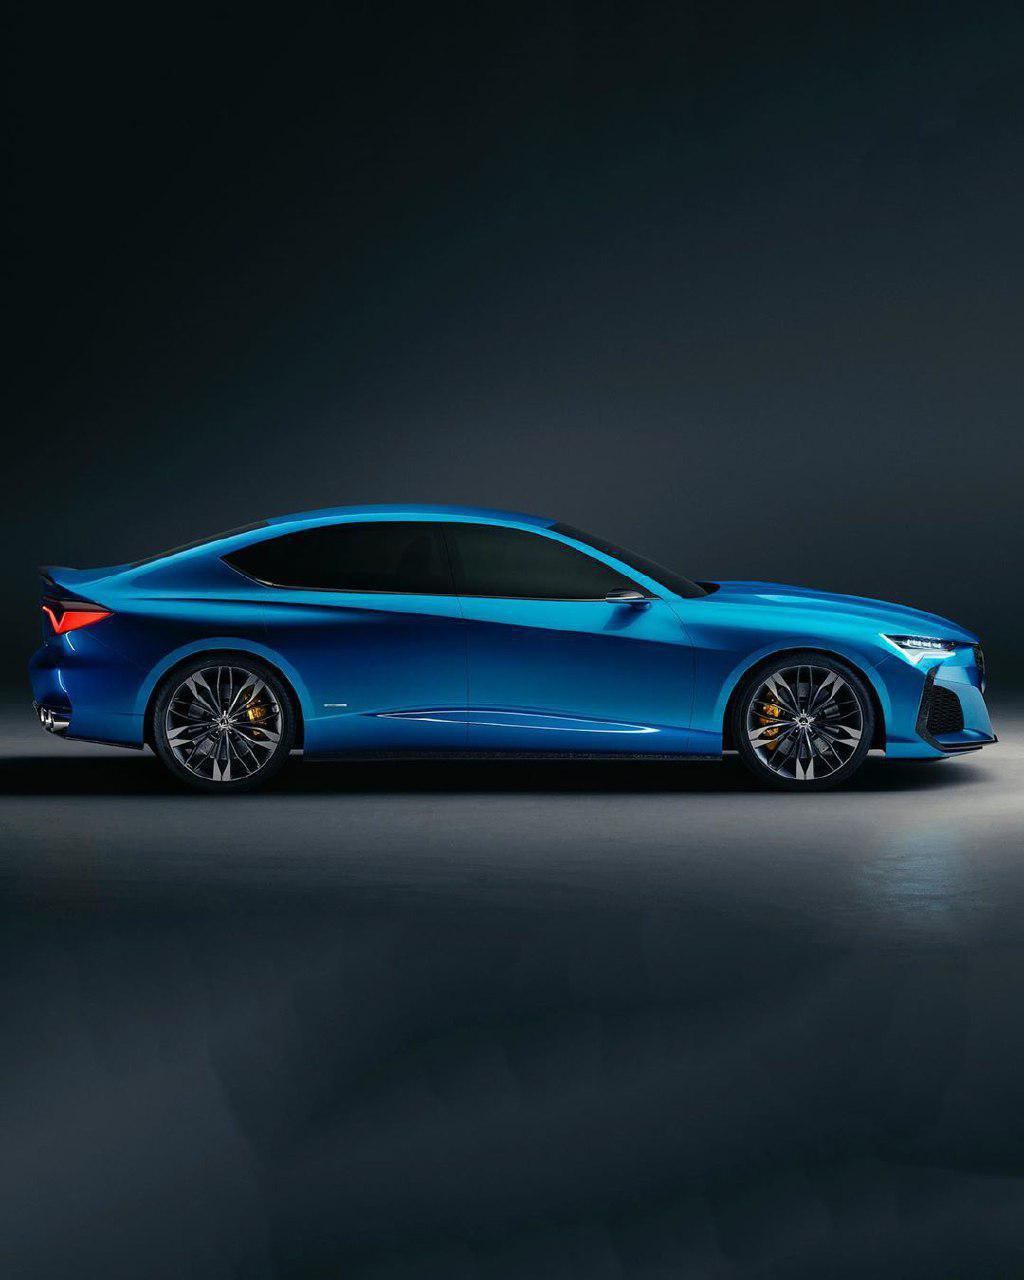 Acura Type-s, Successor To The Acura TLX Sedan, Unveiled